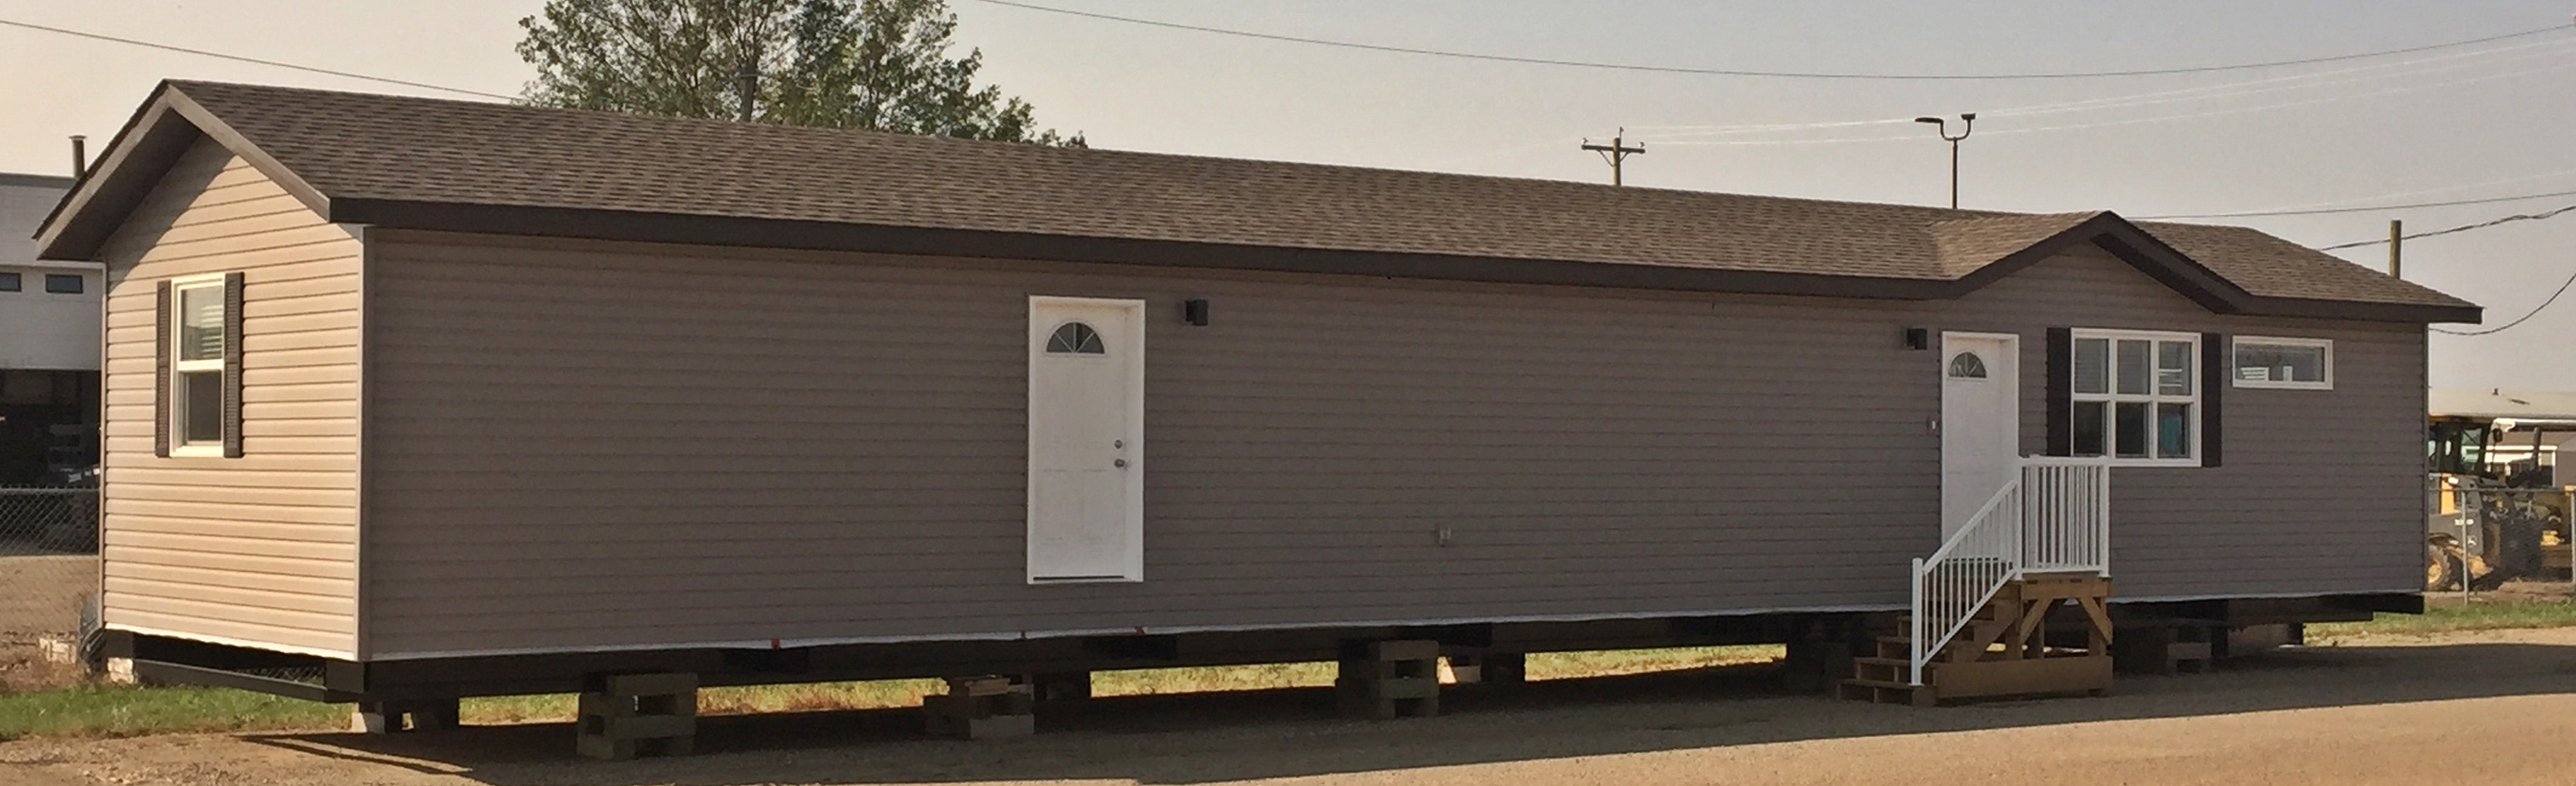 16x72 Z240 Mobile Home | MISB